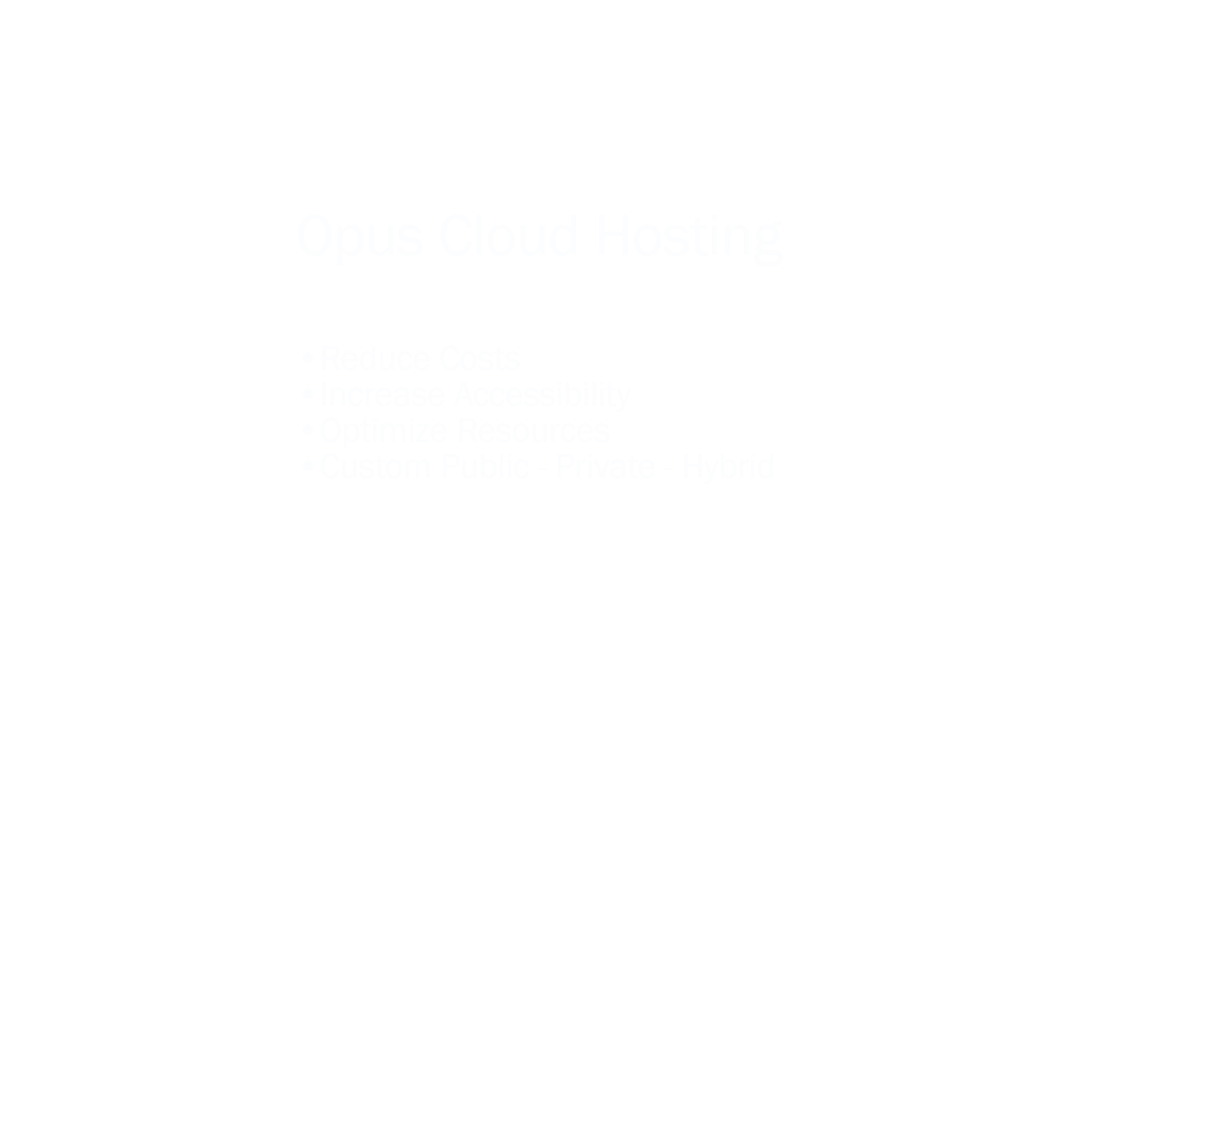 Opus Cloud Hosting